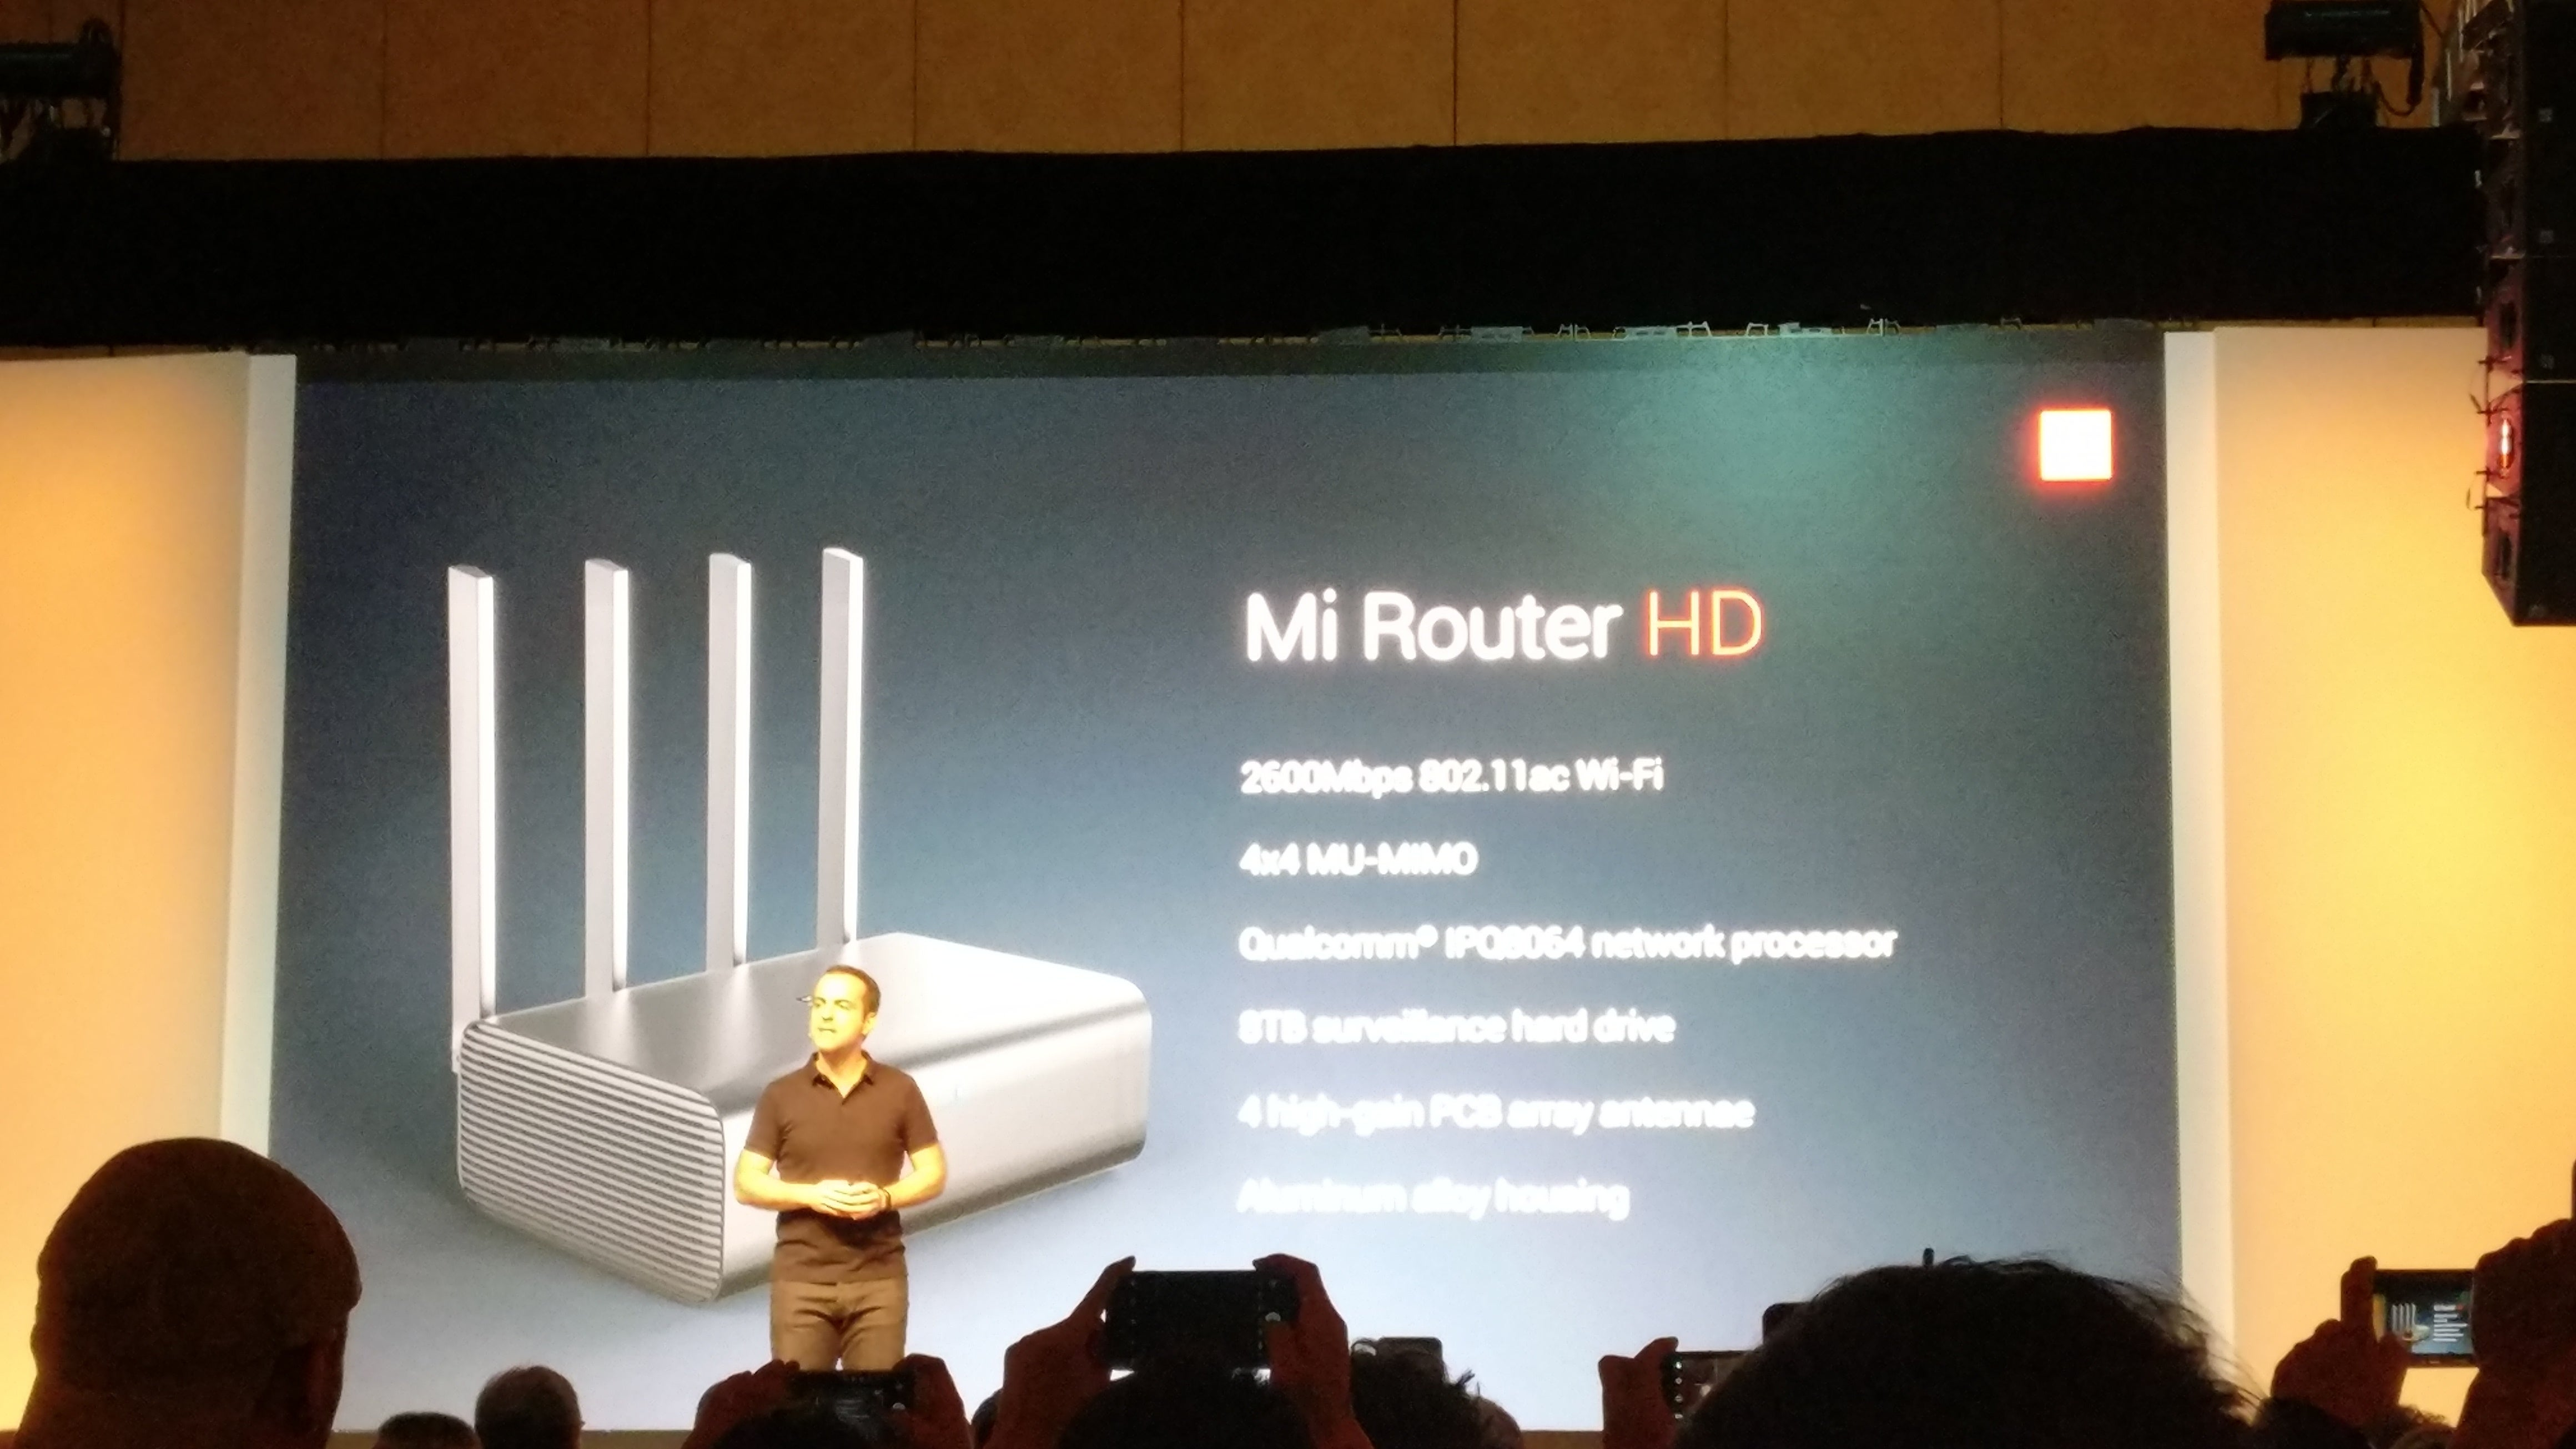 Xiaomi launches a new media router and an updated Mi TV 4, but just